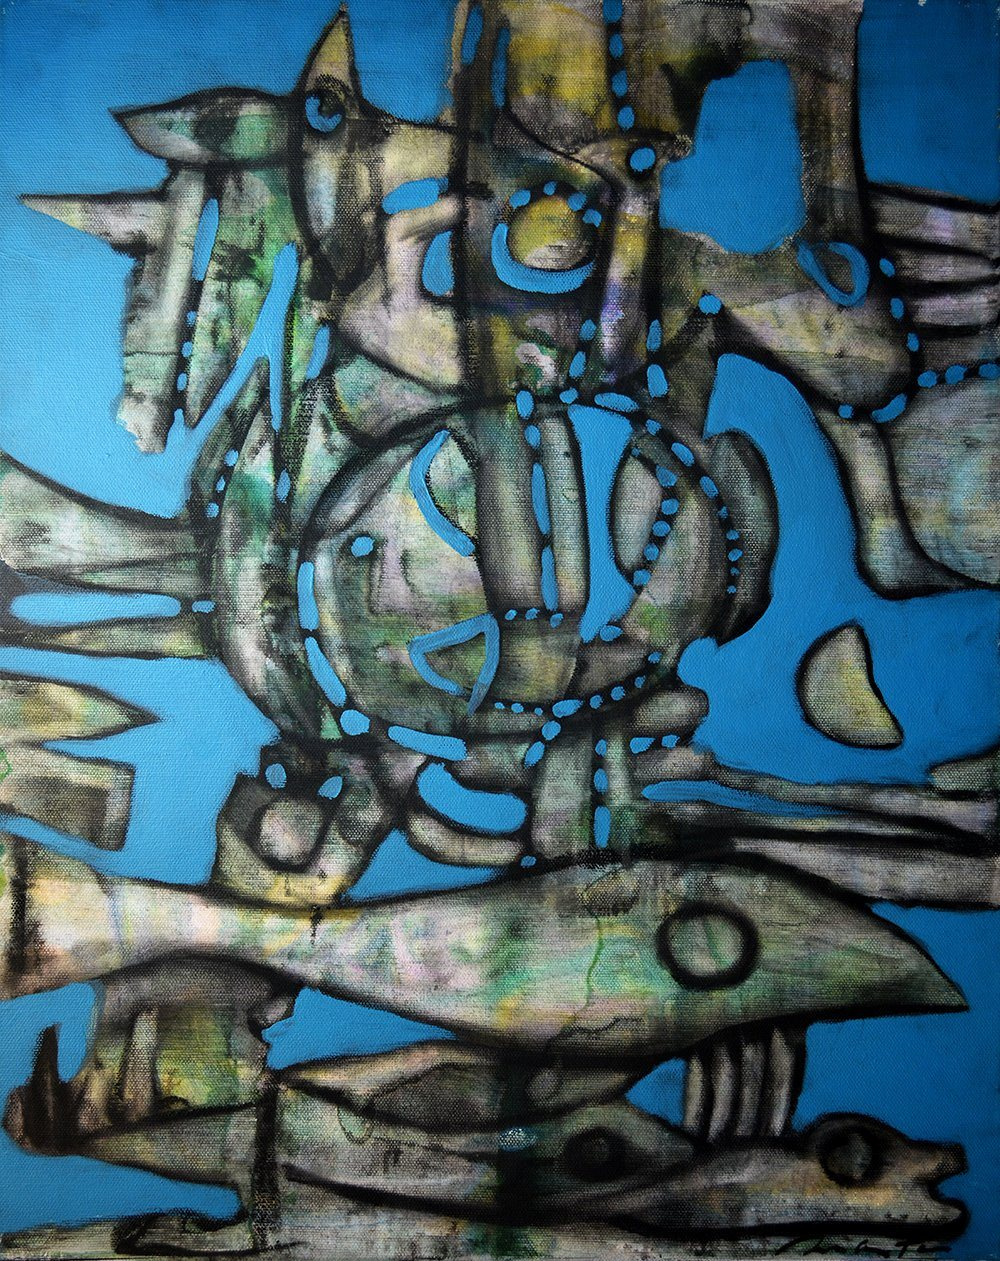 Shipwreck by Rolando Duartes, Acrylic at Art Acacia Gallery & Advisory